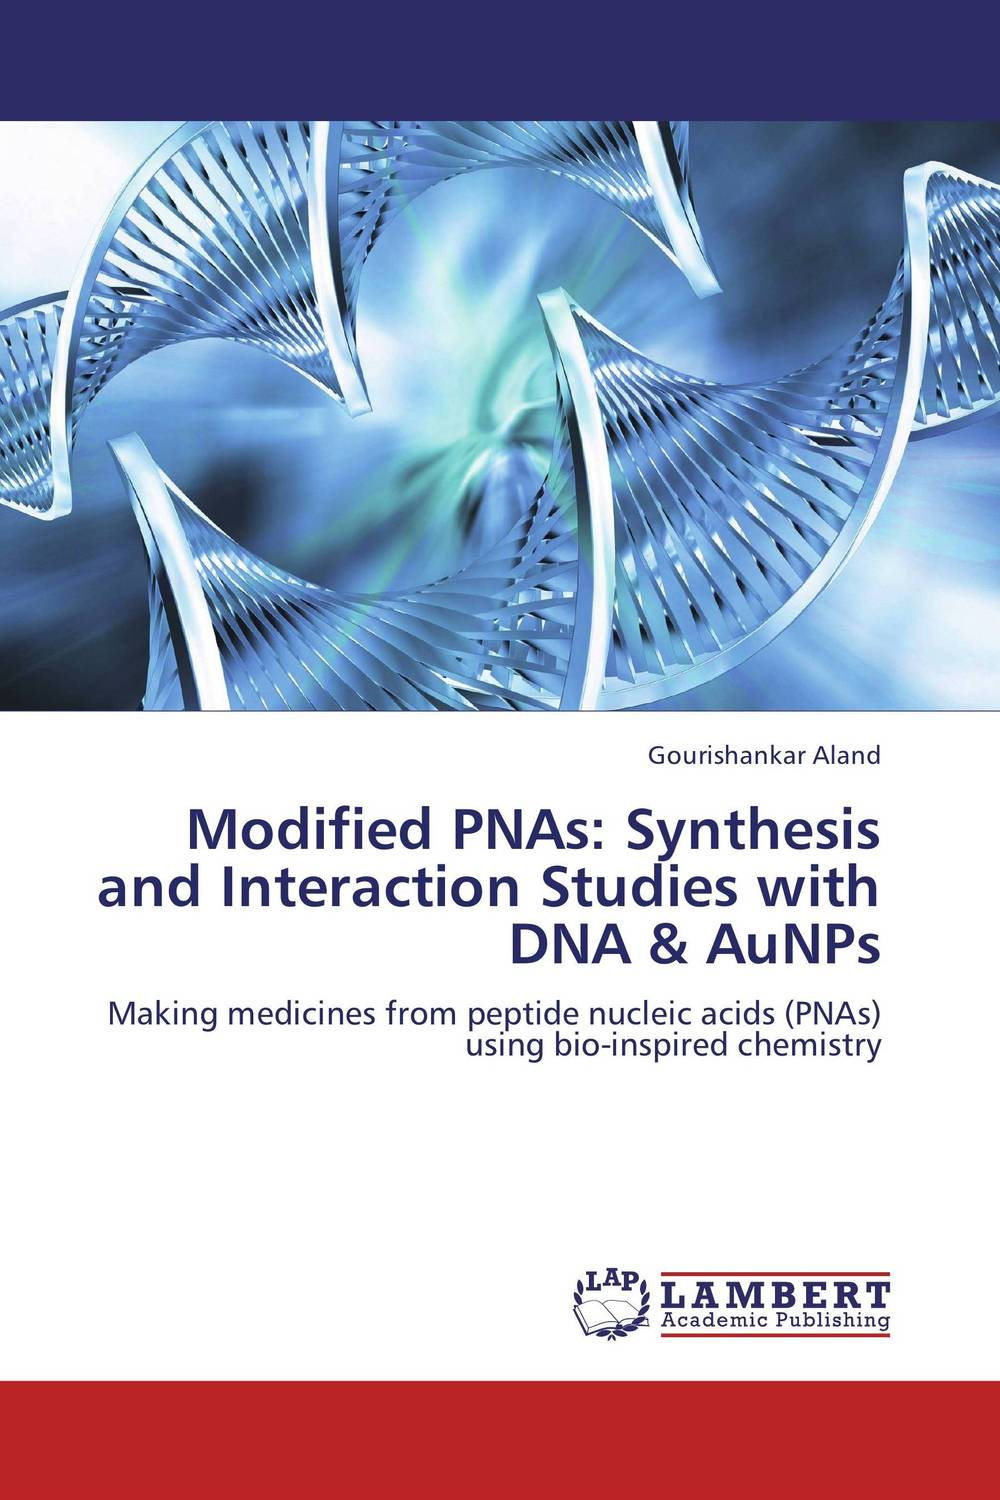 Modified PNAs: Synthesis and Interaction Studies with DNA & AuNPs modified pnas synthesis and interaction studies with dna